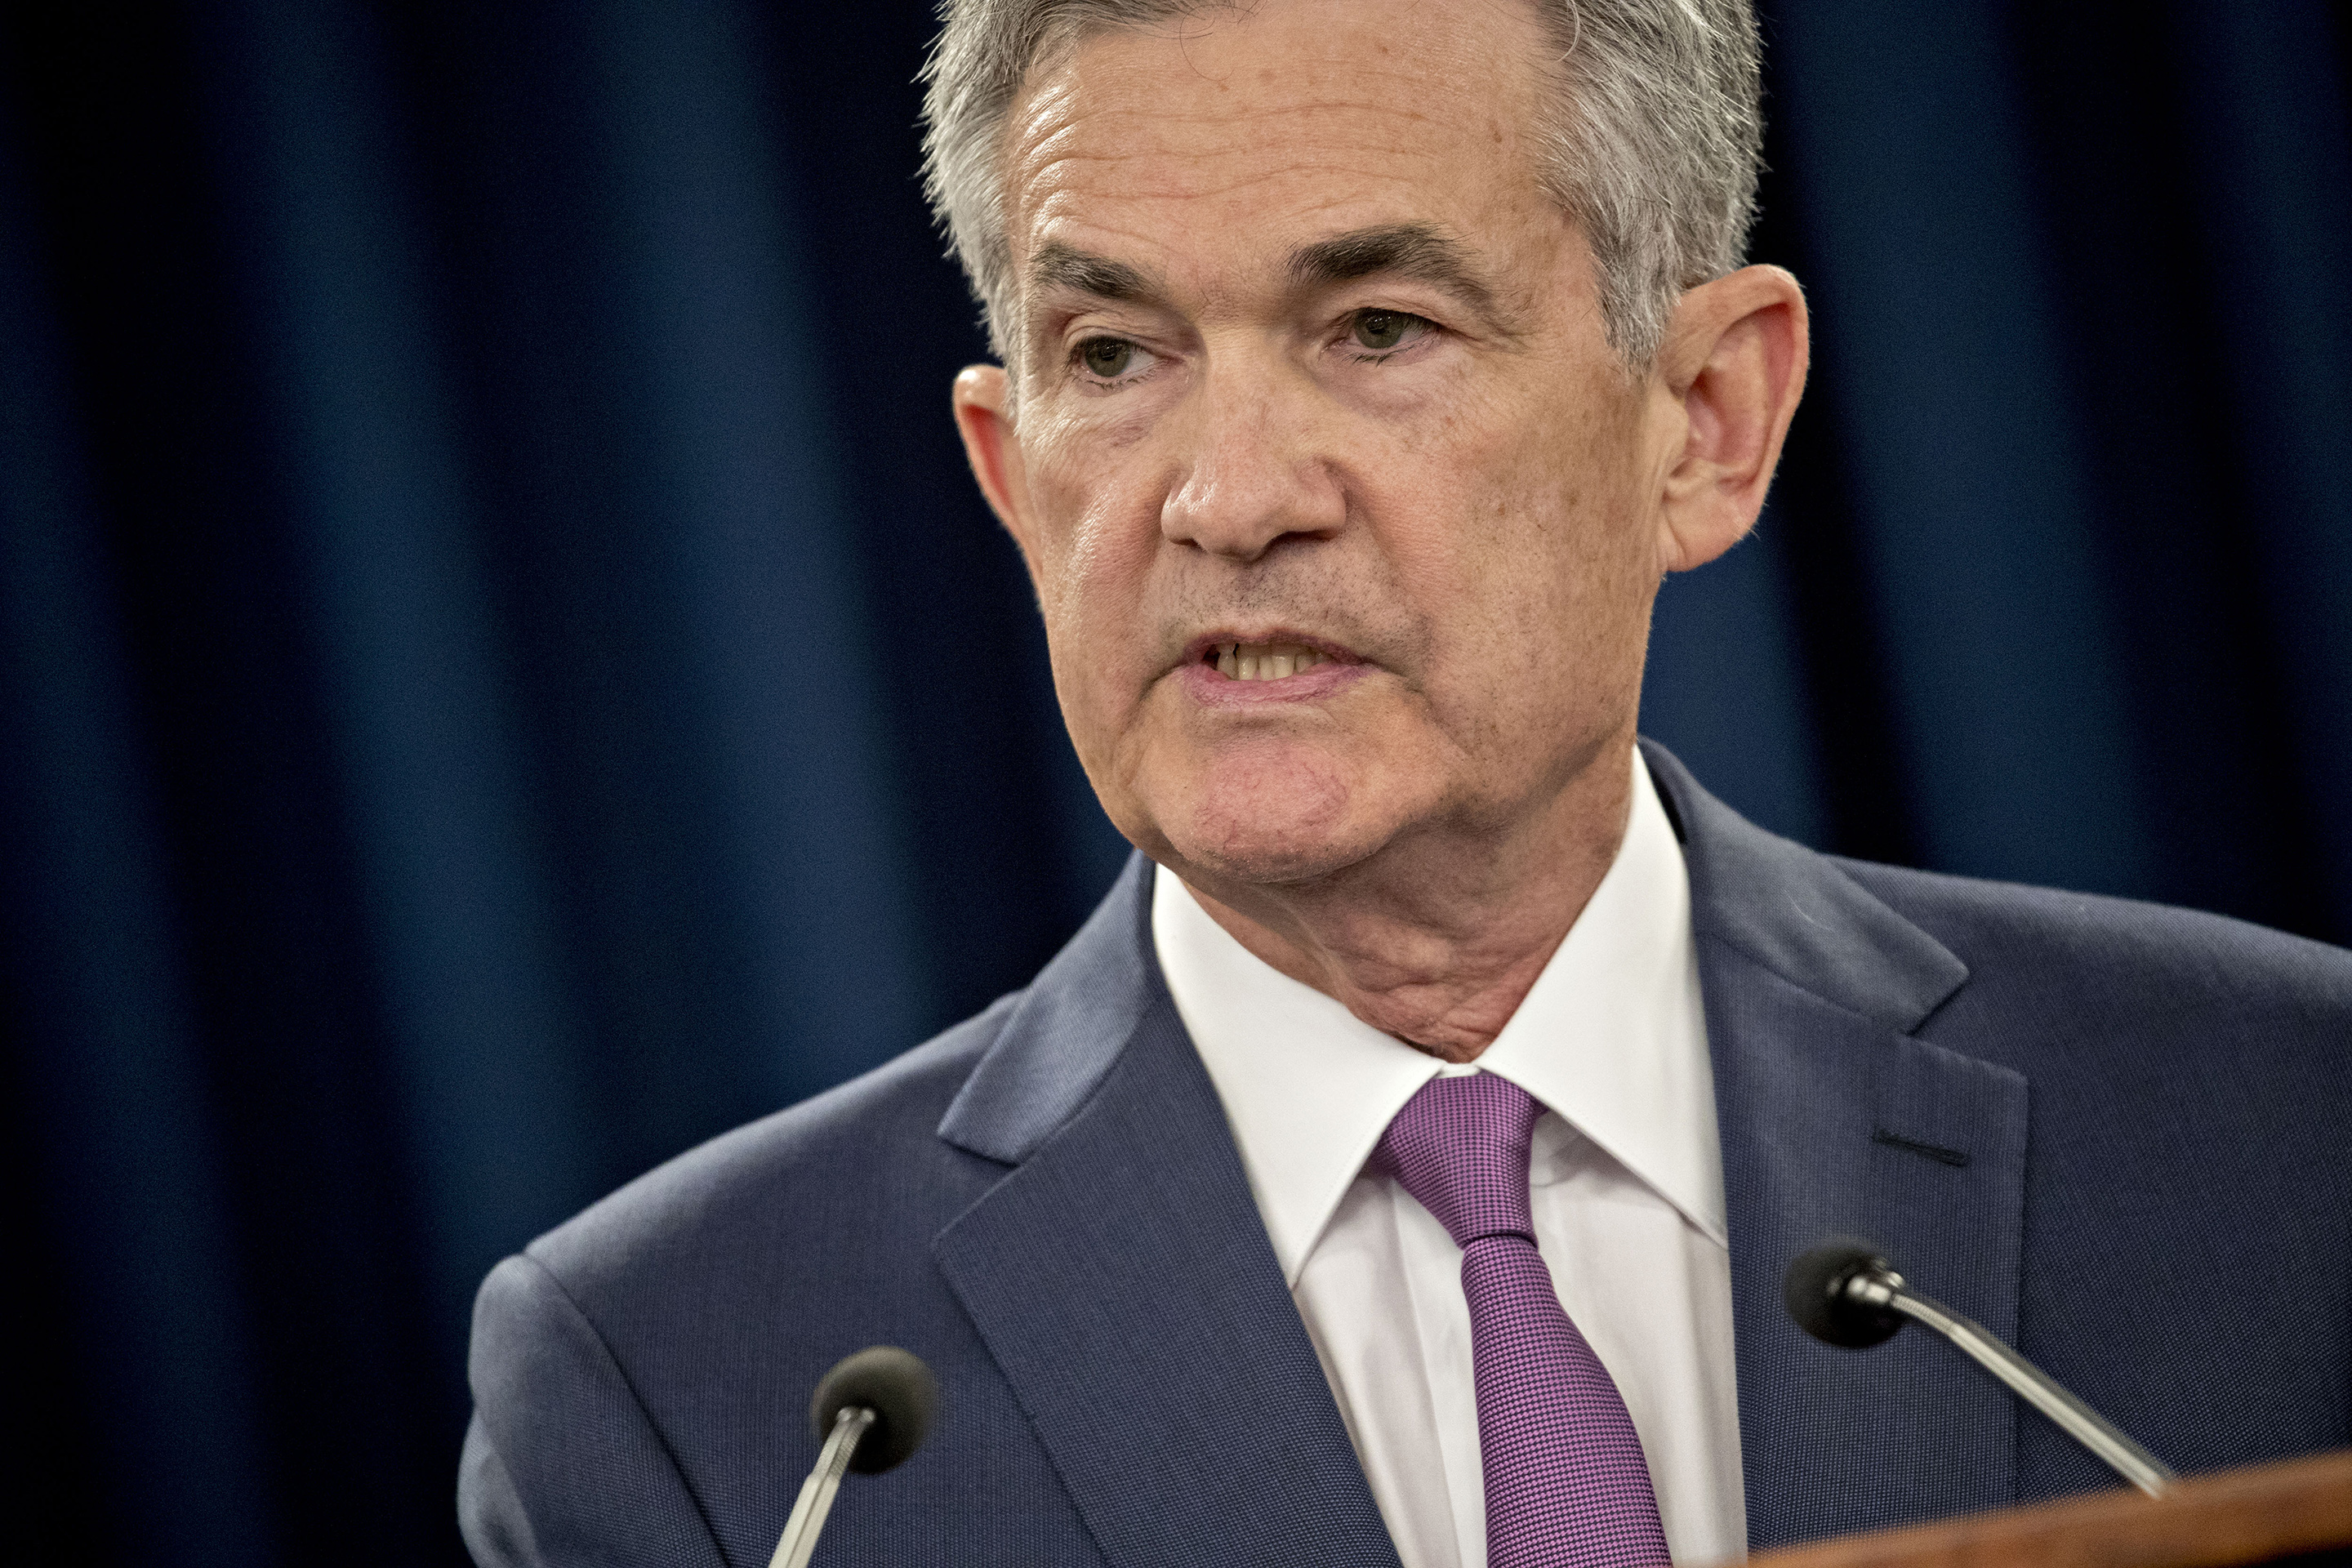 jerome-powell-fed-chair-press-conference